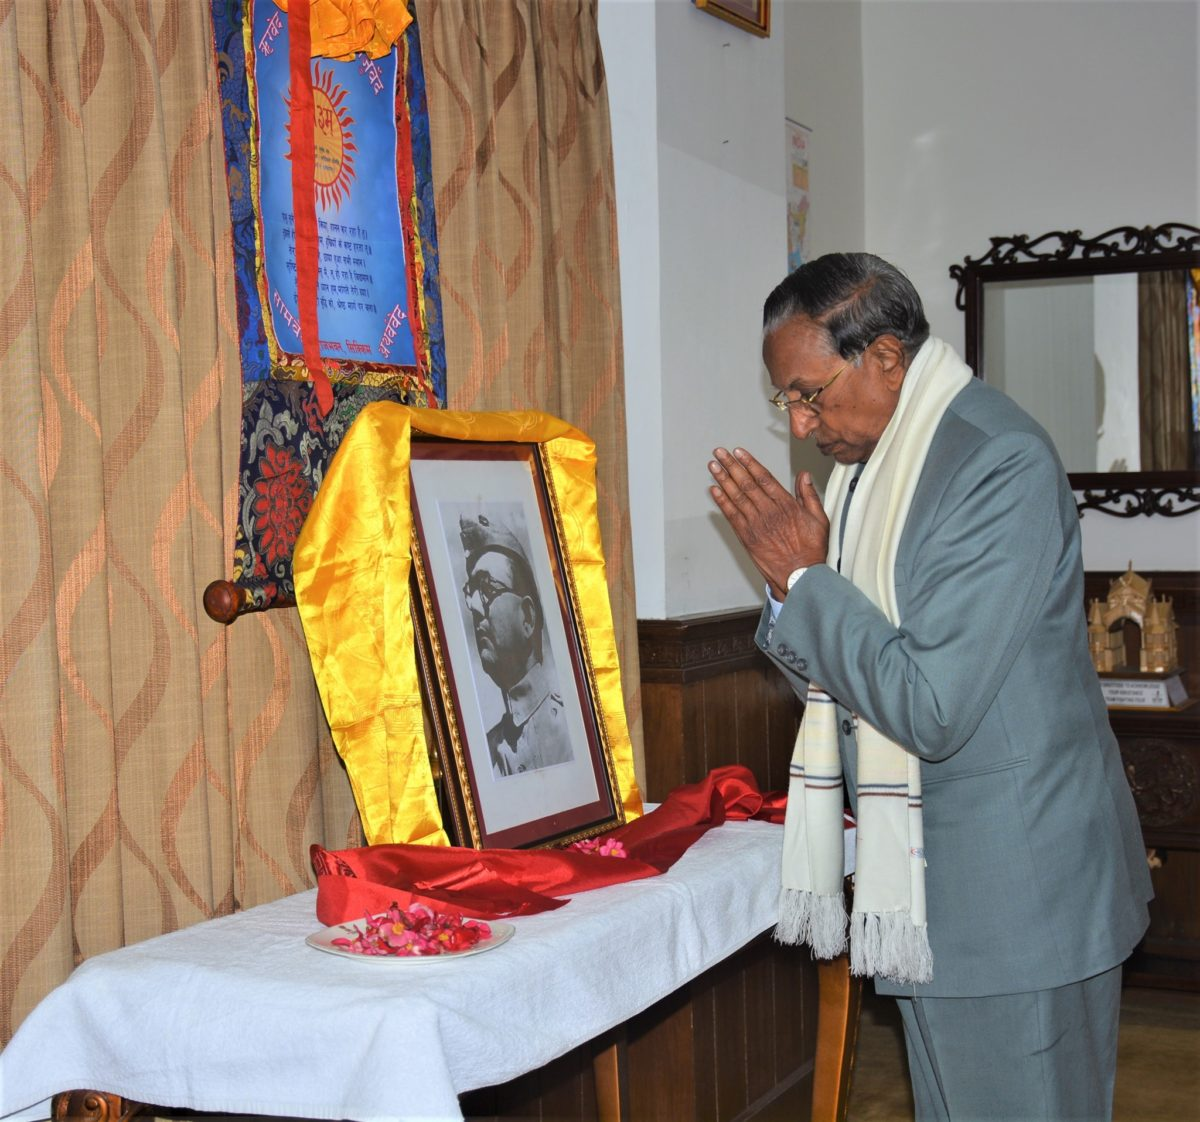 Hon'ble Governor paid floral tribute at the portrait of late Netaji Subhas Chandra Bose